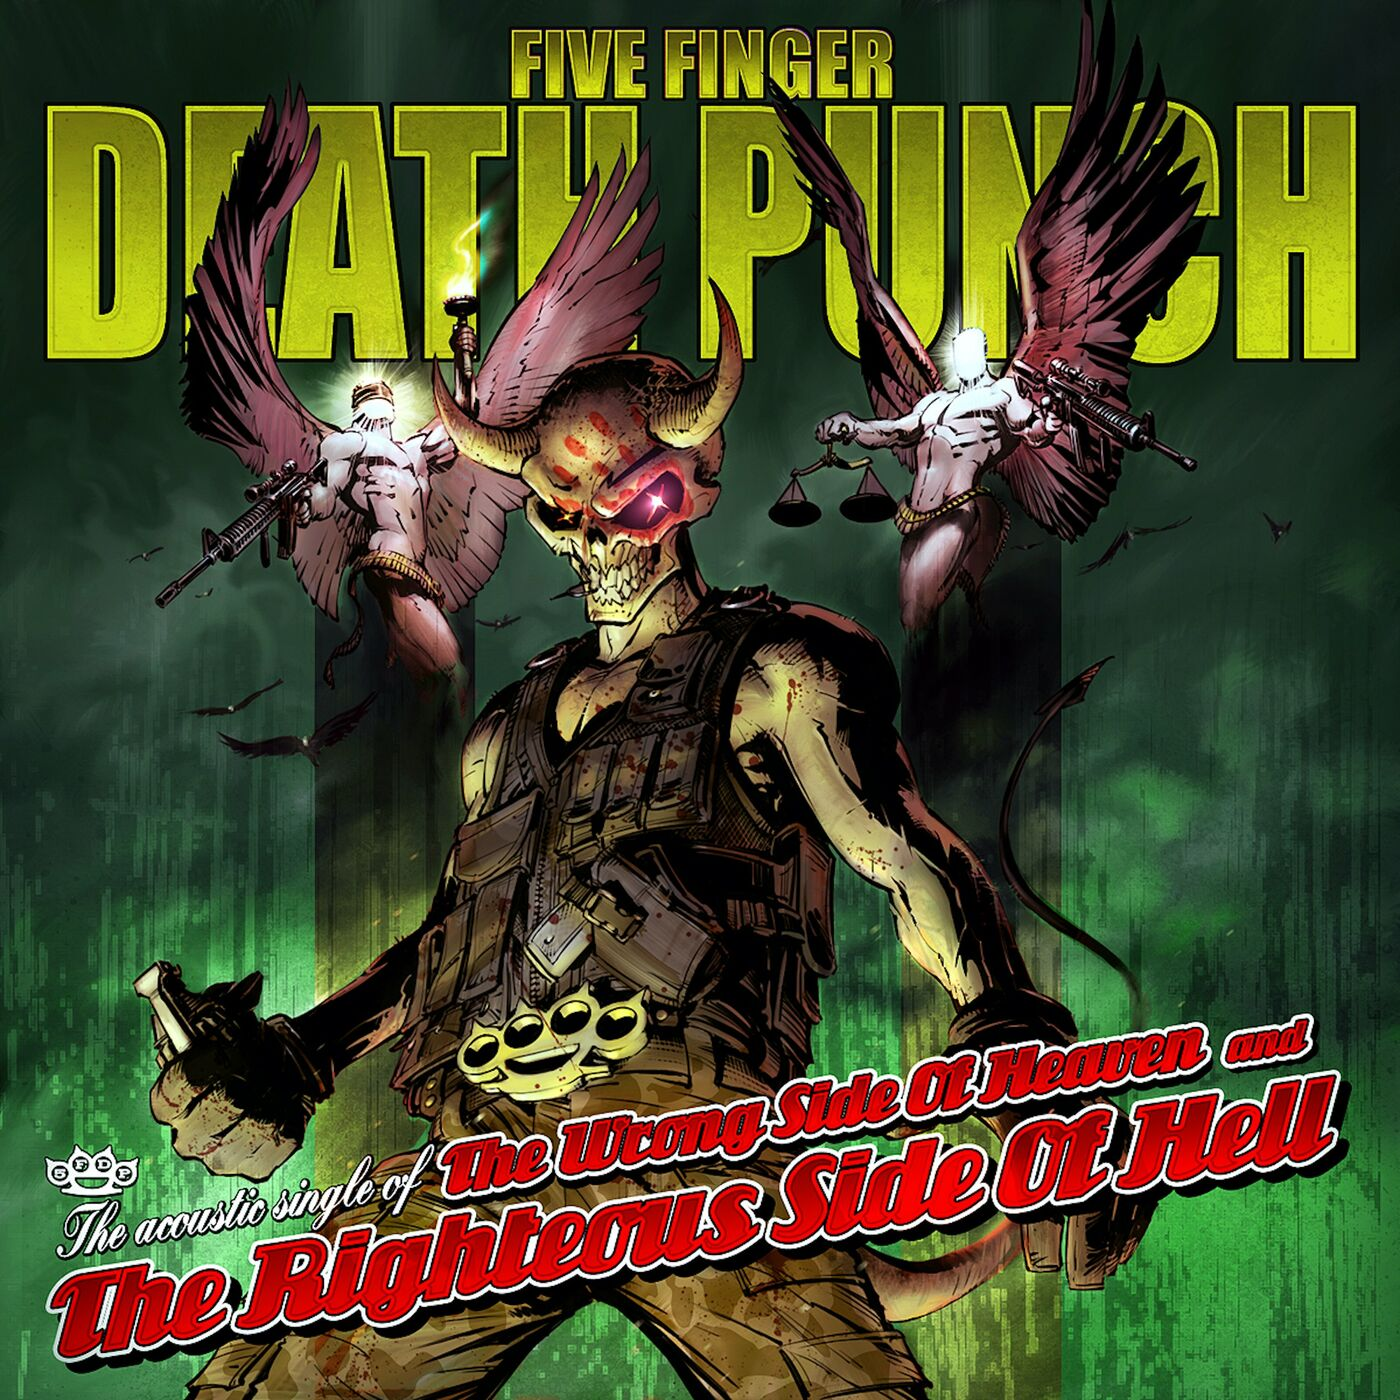 Five Finger Death Punch - Wrong Side Of Heaven (Acoustic) [single] (2020)